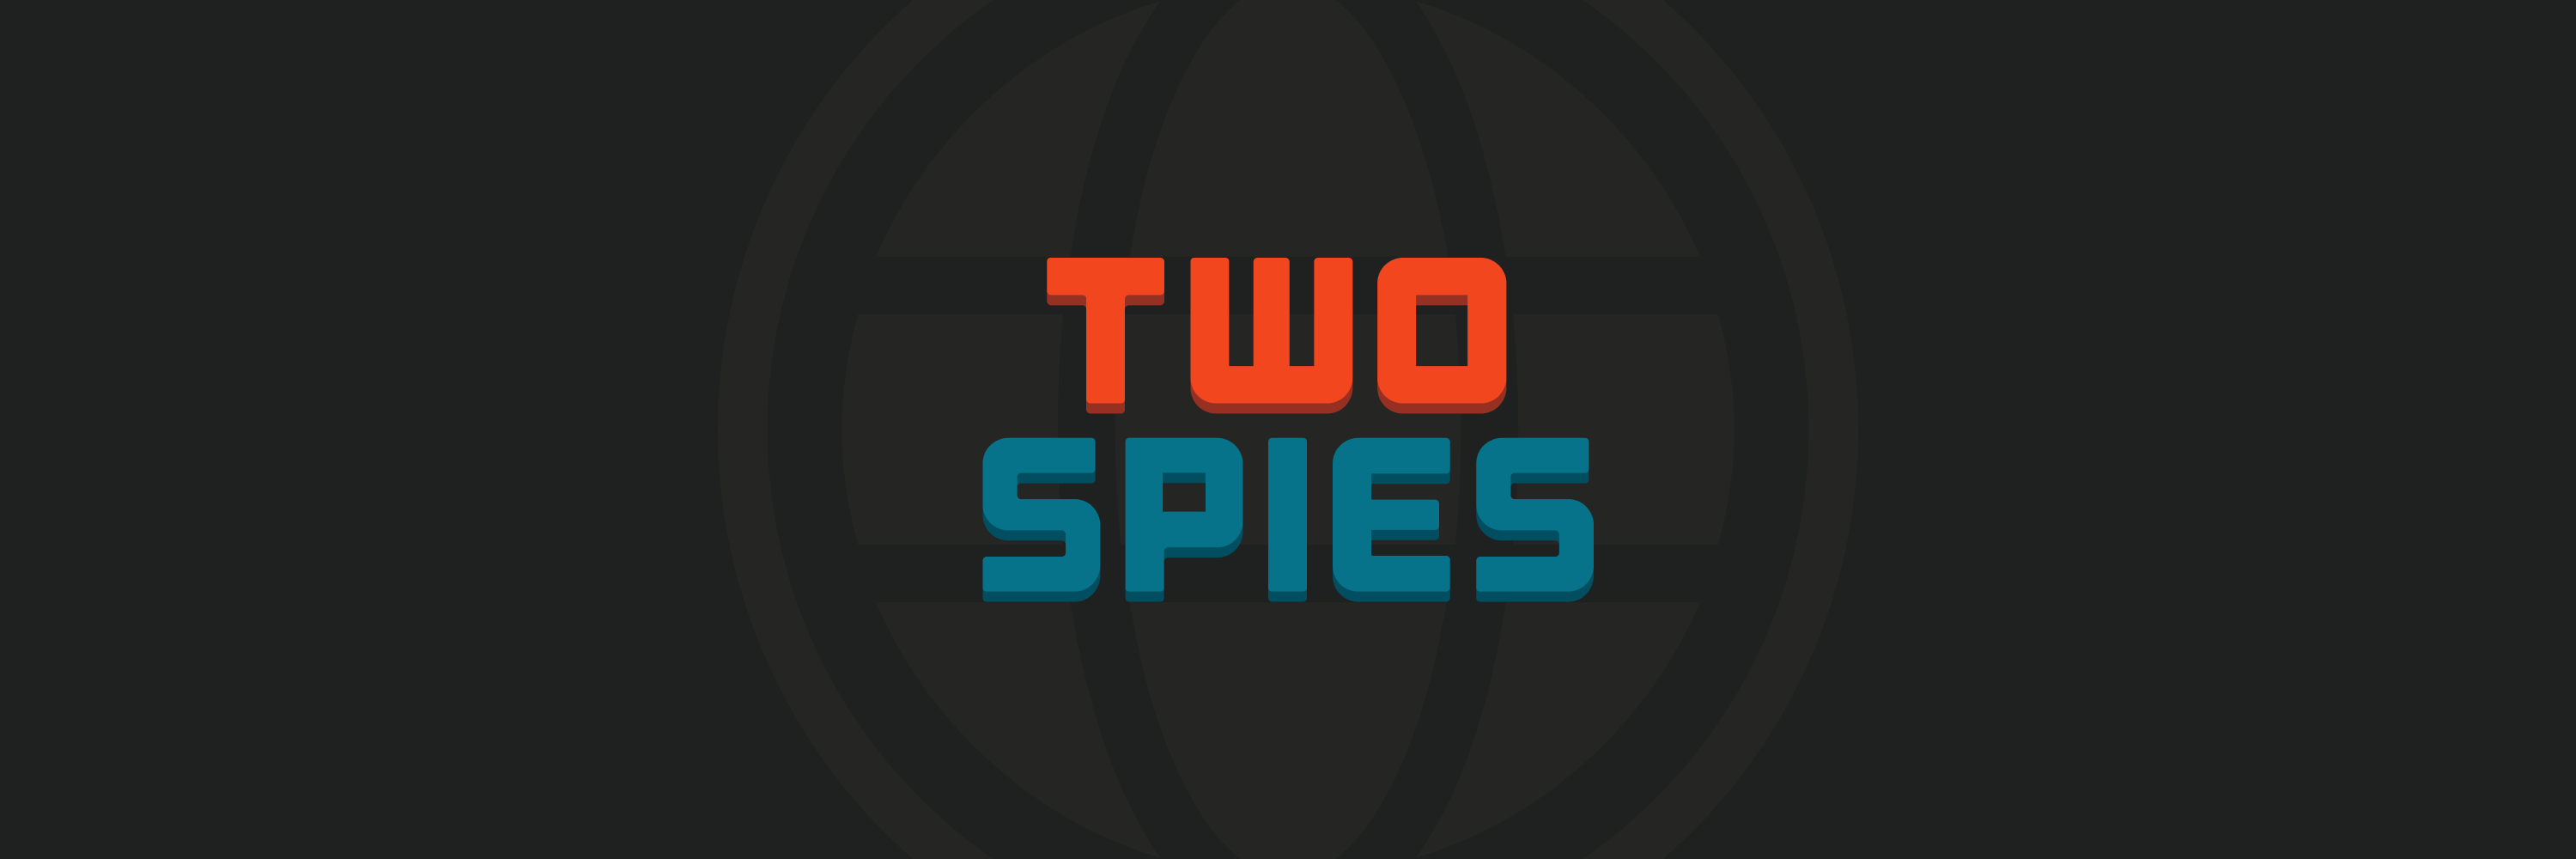 Two Spies game logo